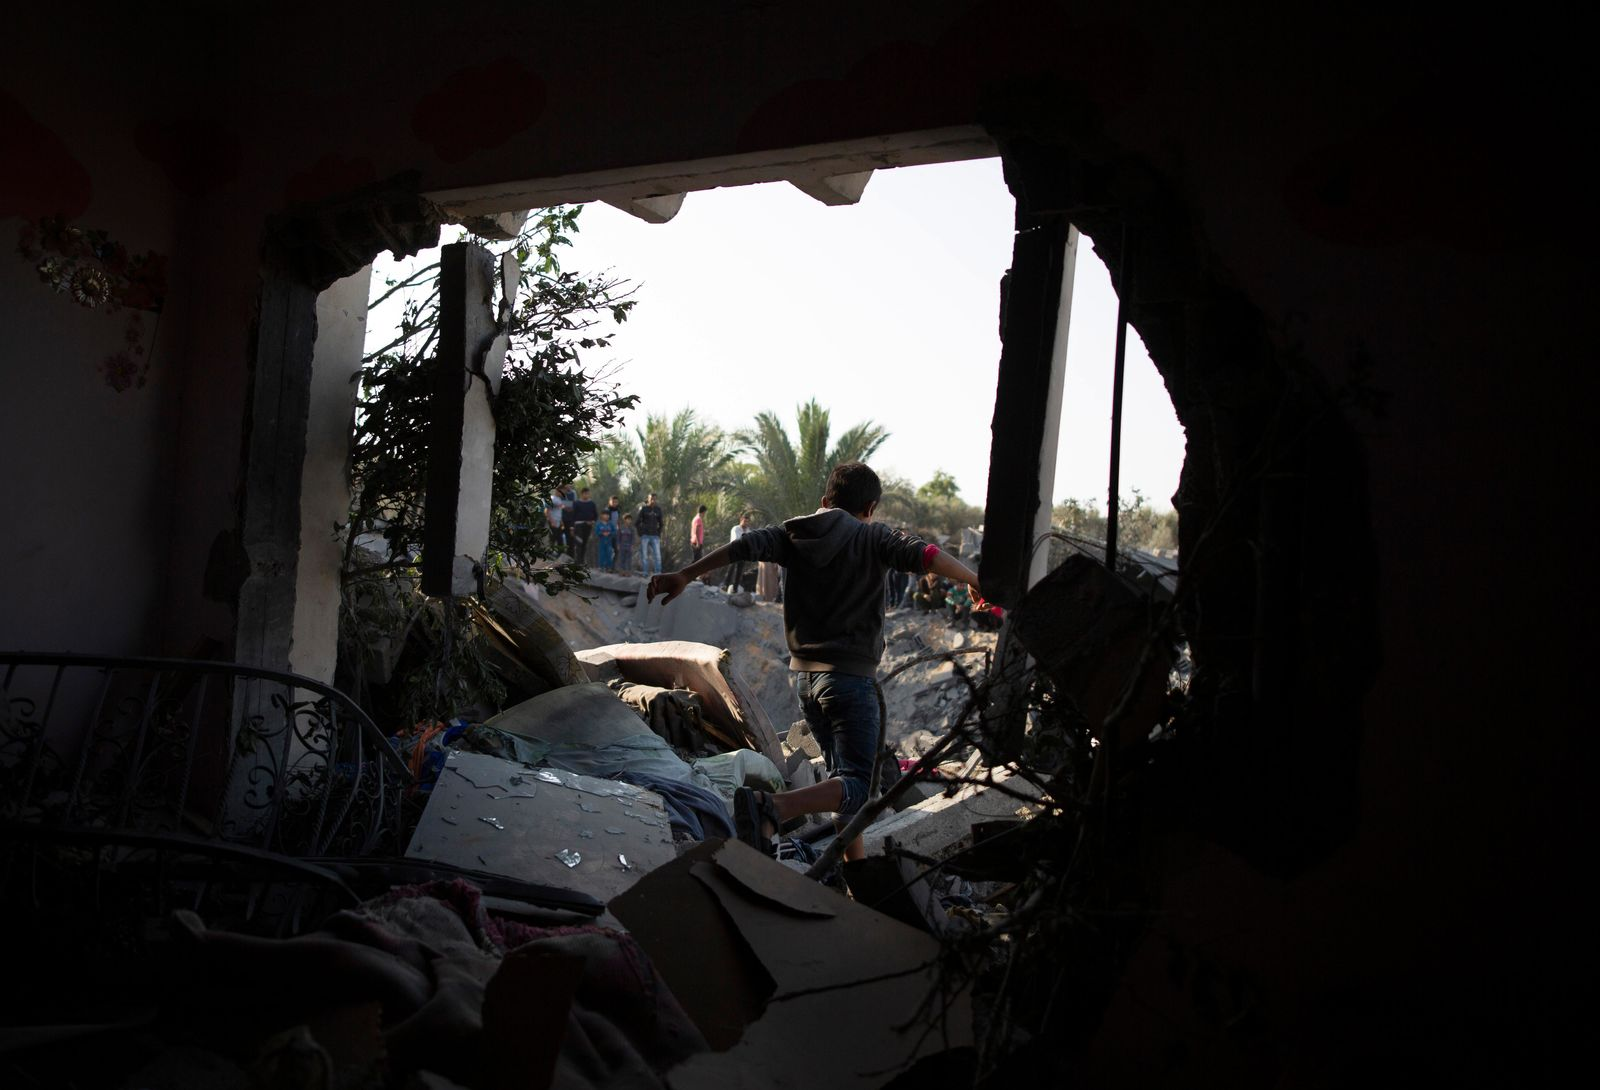 A Palestinian boy walks through a hole in a wall of a destroyed house following overnight Israeli missile strikes, in the town of Khan Younis, southern Gaza Strip, Thursday, Nov. 14, 2019. (AP Photo/Khalil Hamra)